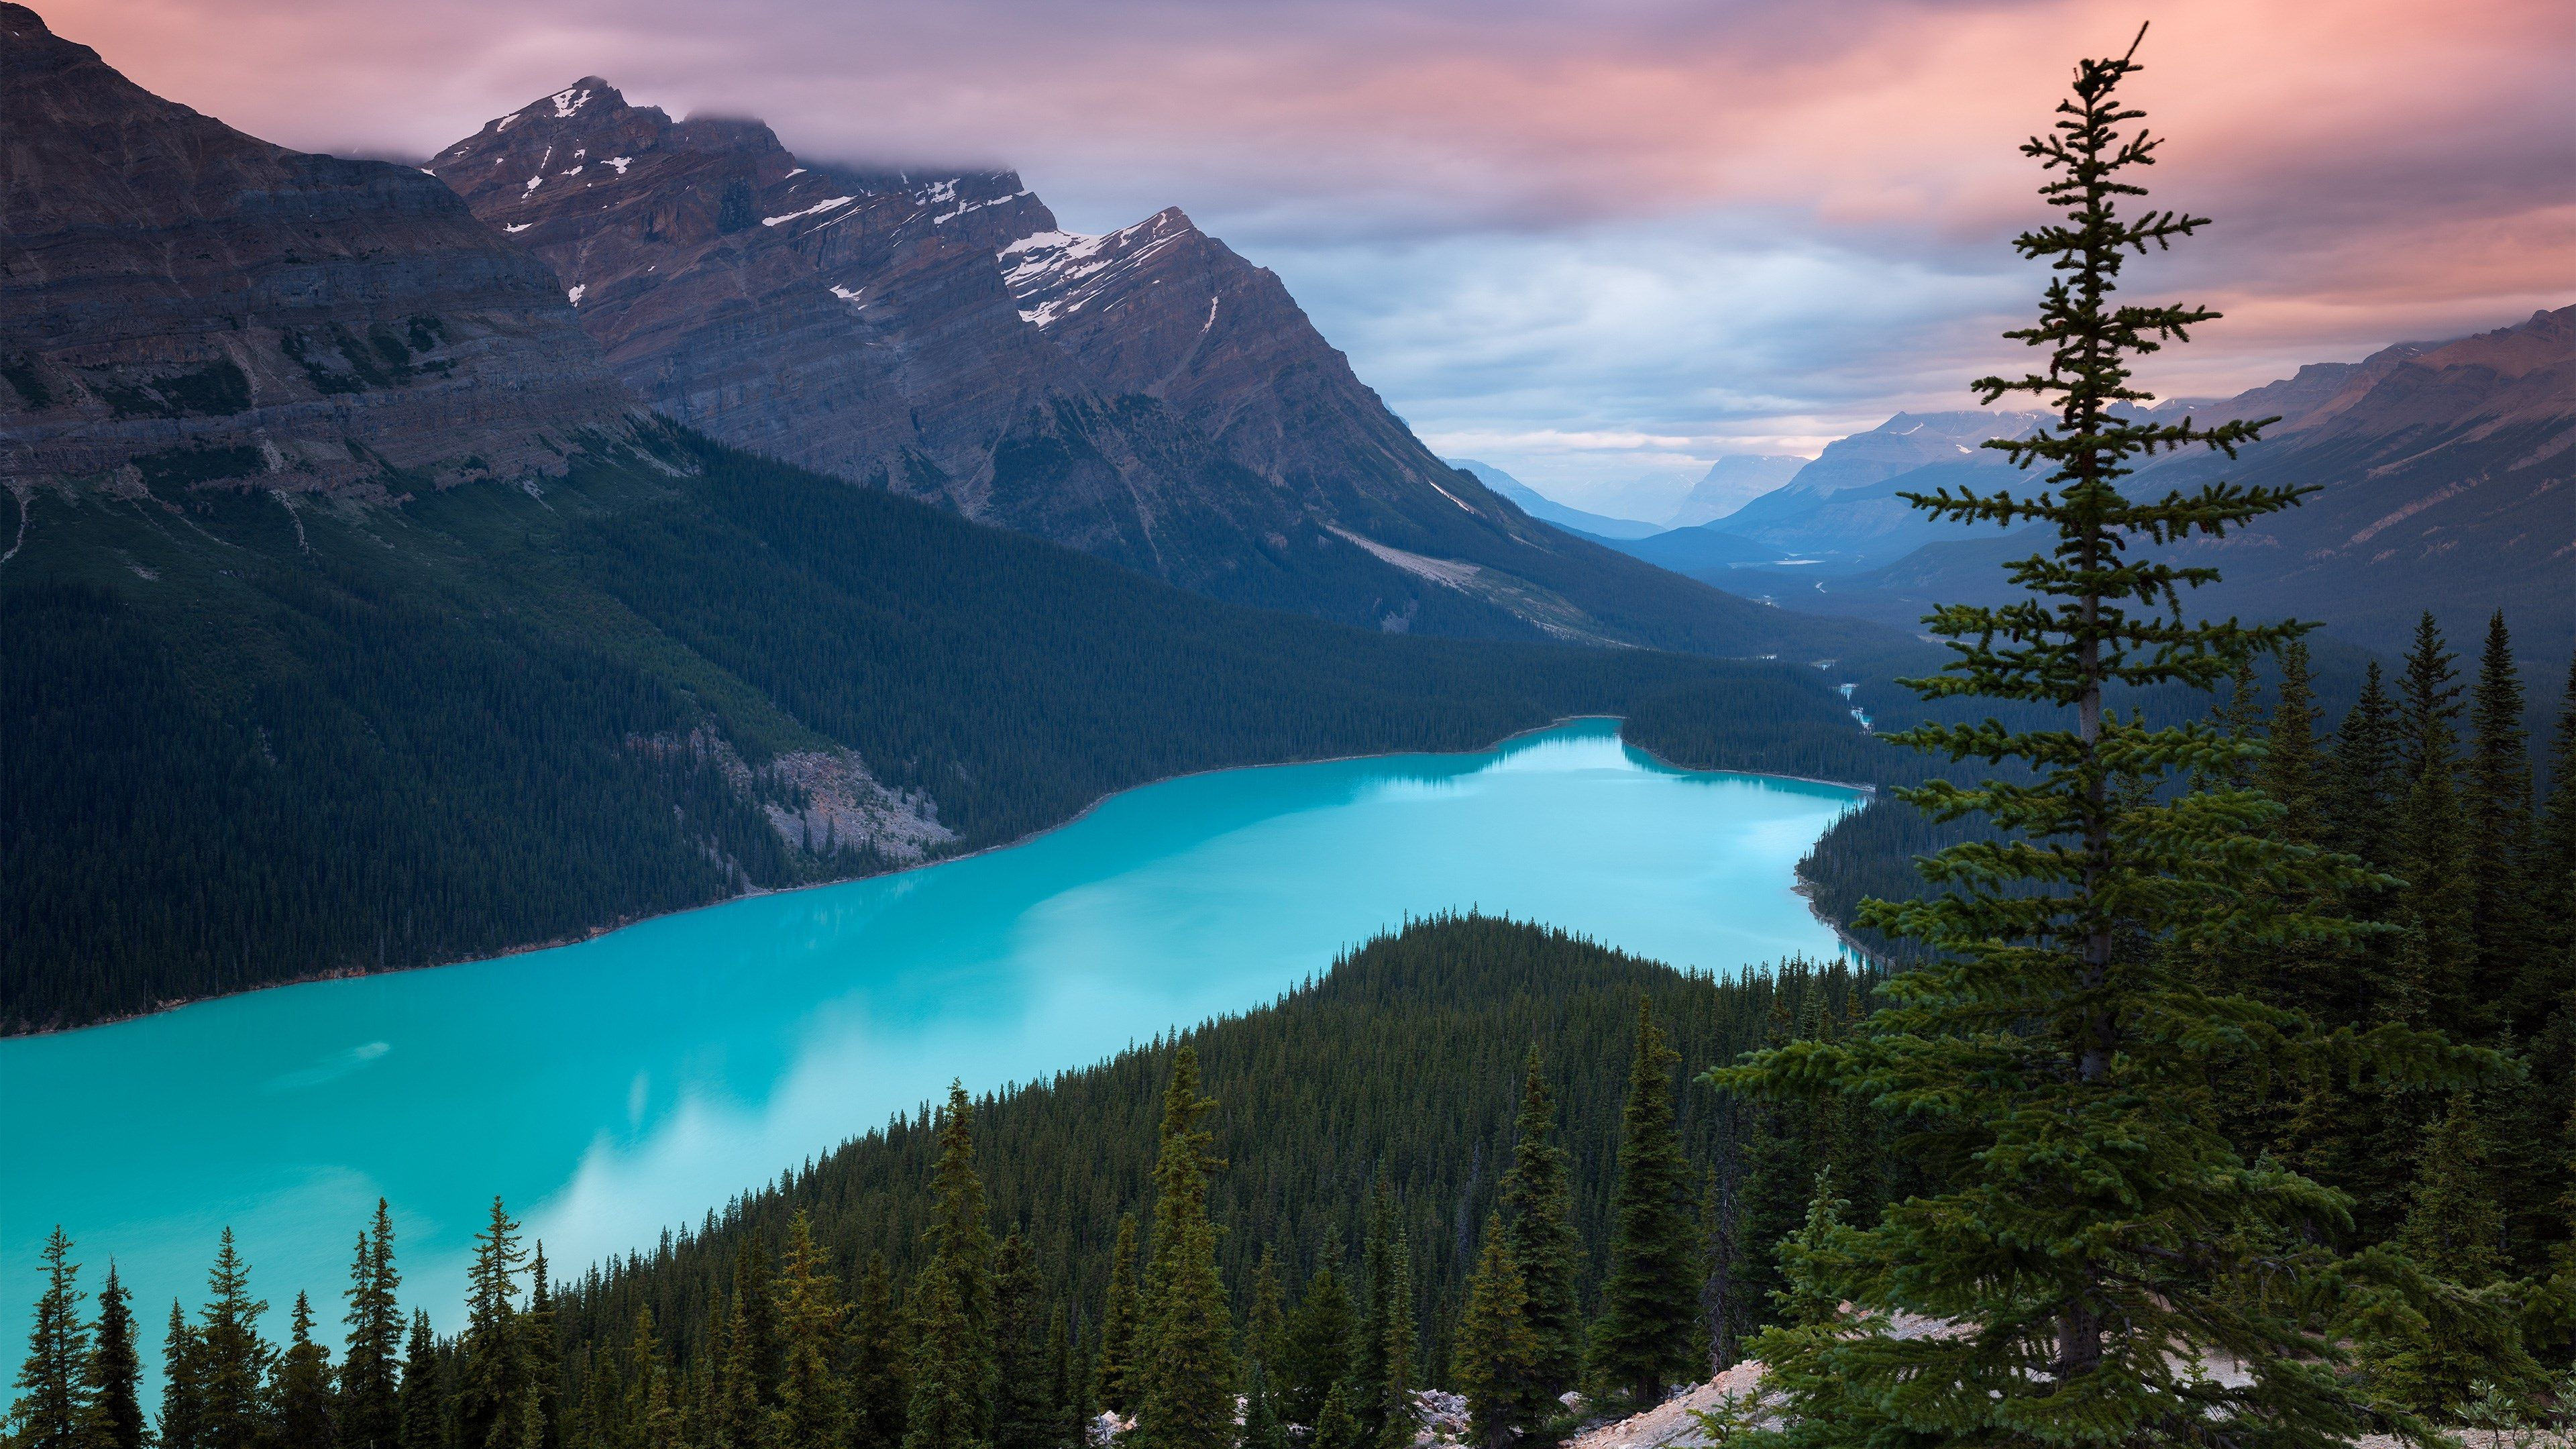 3840x2160 mountains 4k high res wallpaper Canada lakes